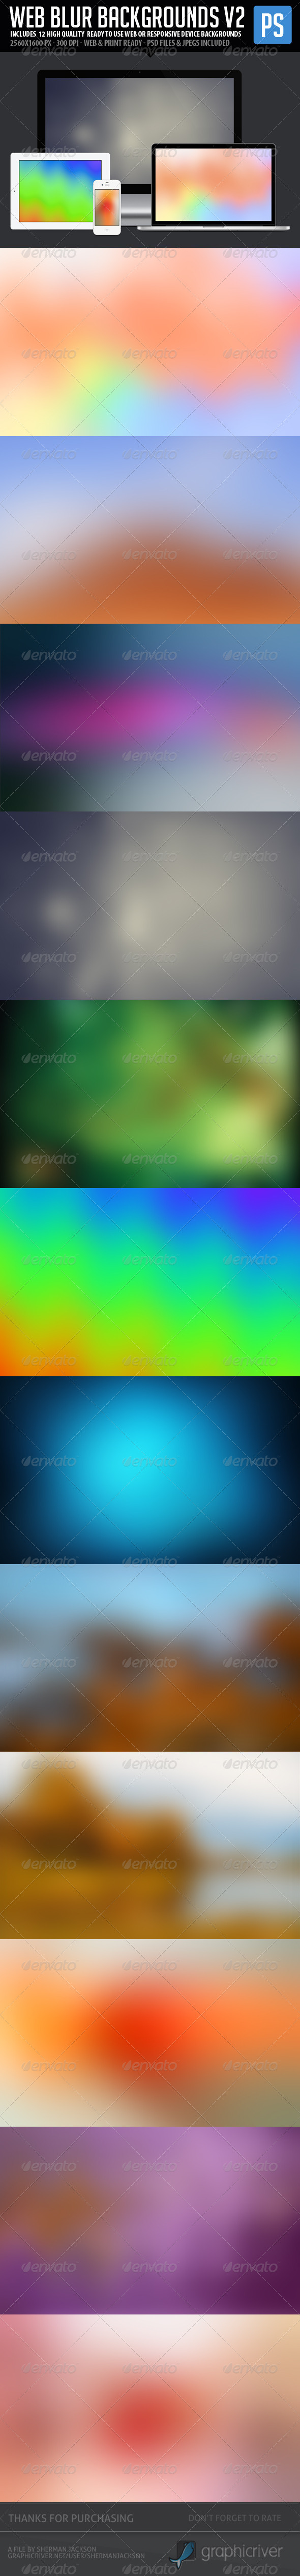 GraphicRiver Web Blur Backgrounds V2 12 in 1 5877120